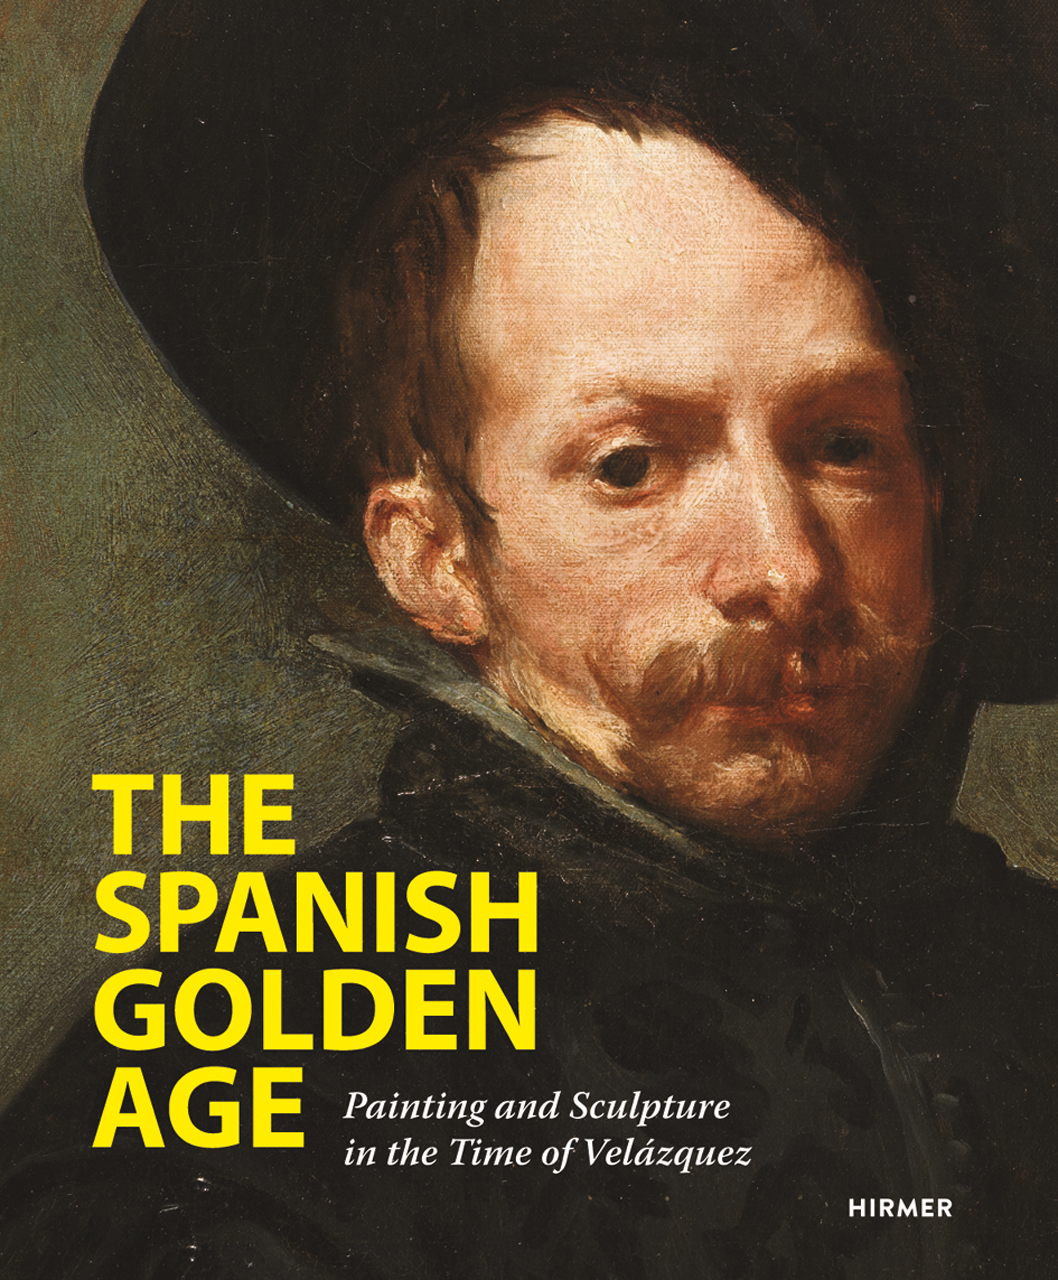 The Spanish Golden Age: Painting and Sculpture in the Time of Velázquez